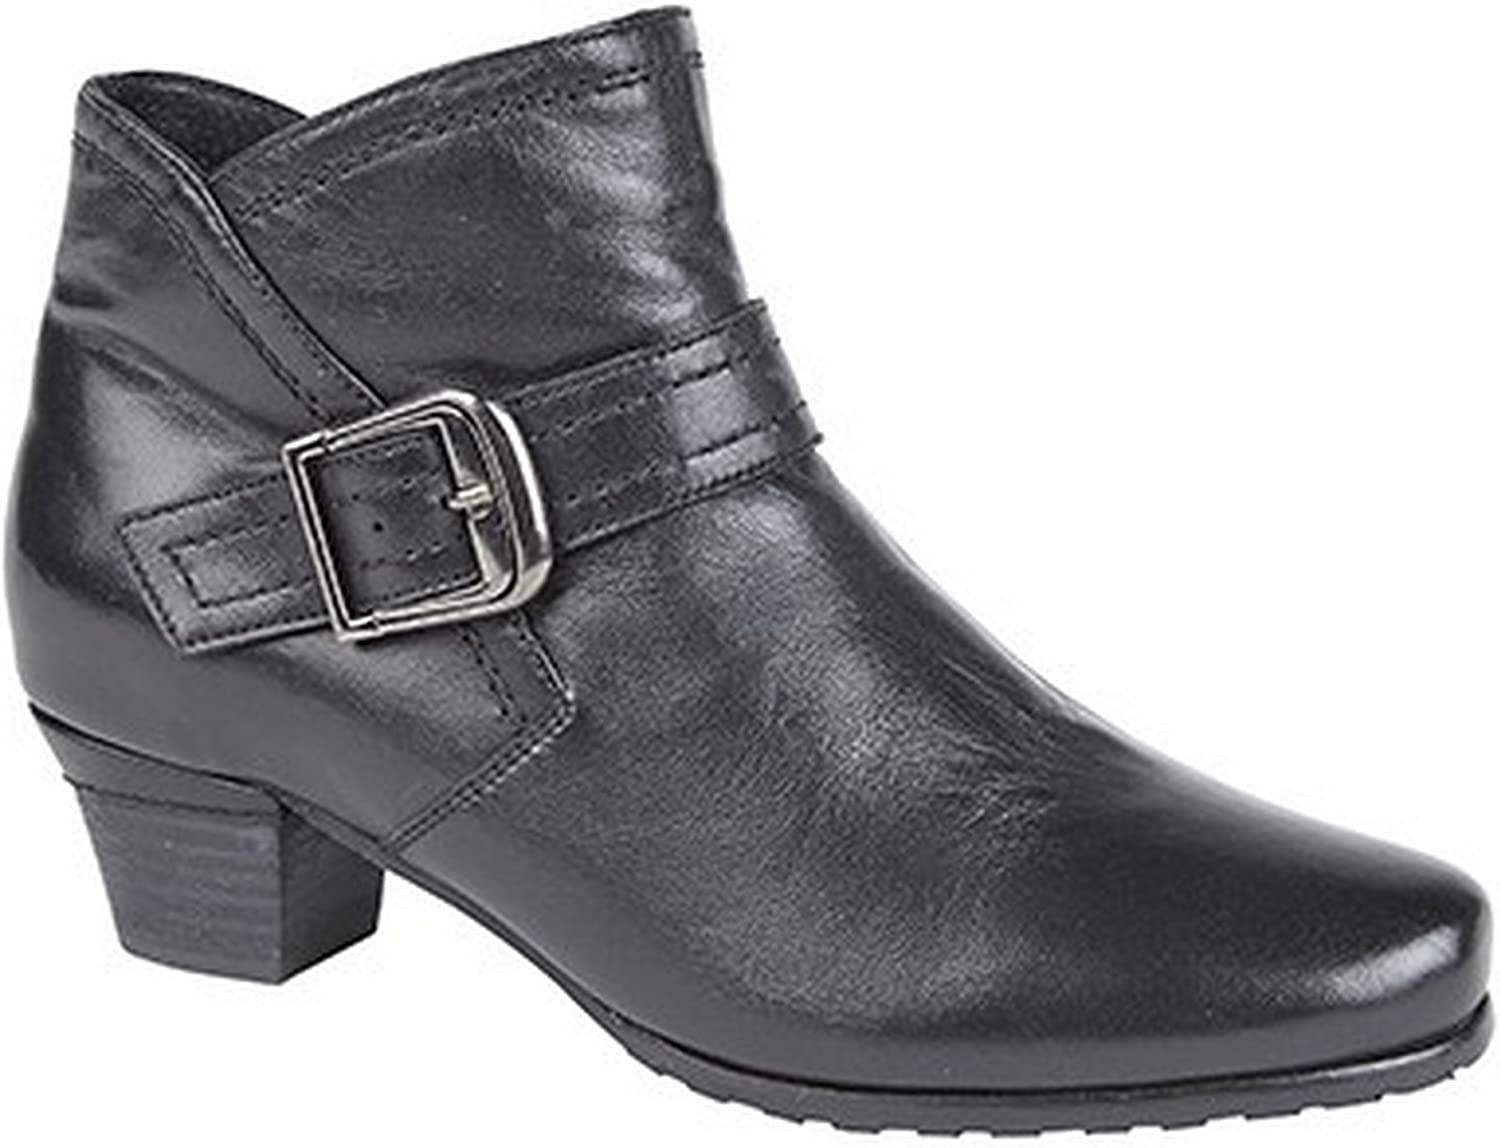 Mod Comfys Womens Ladies Softie Leather Buckle Ankle Boots